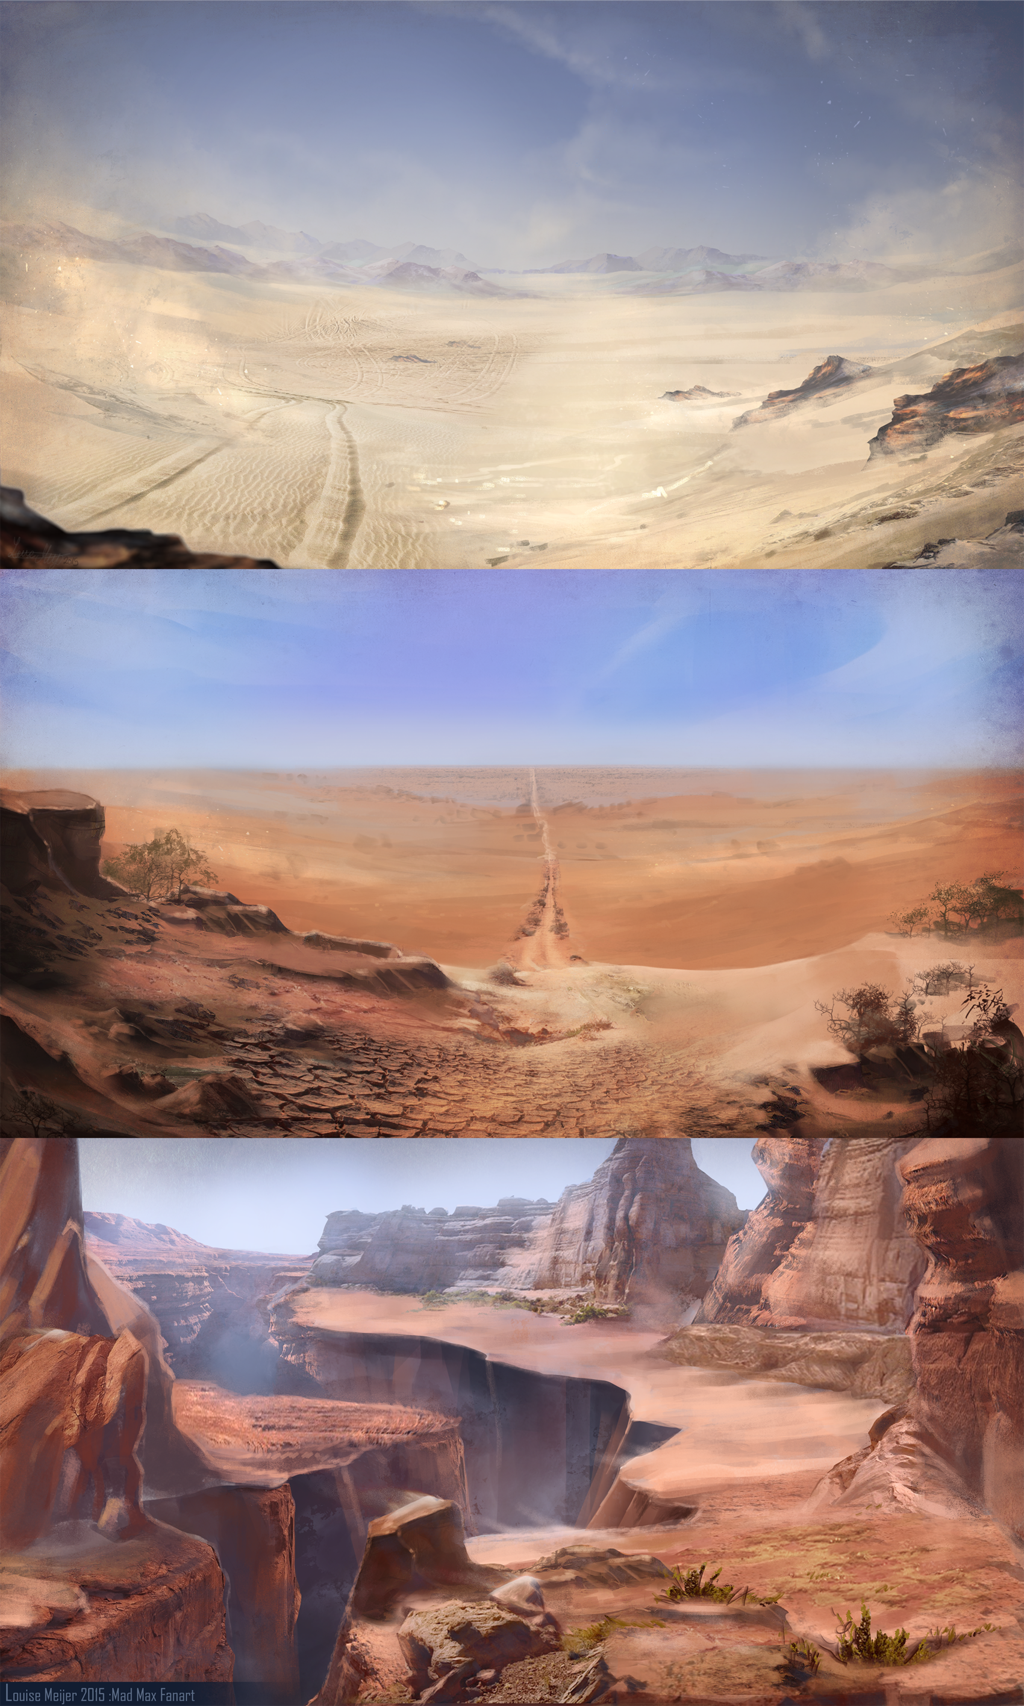 MadMax environment concept by Roiuky on DeviantArt